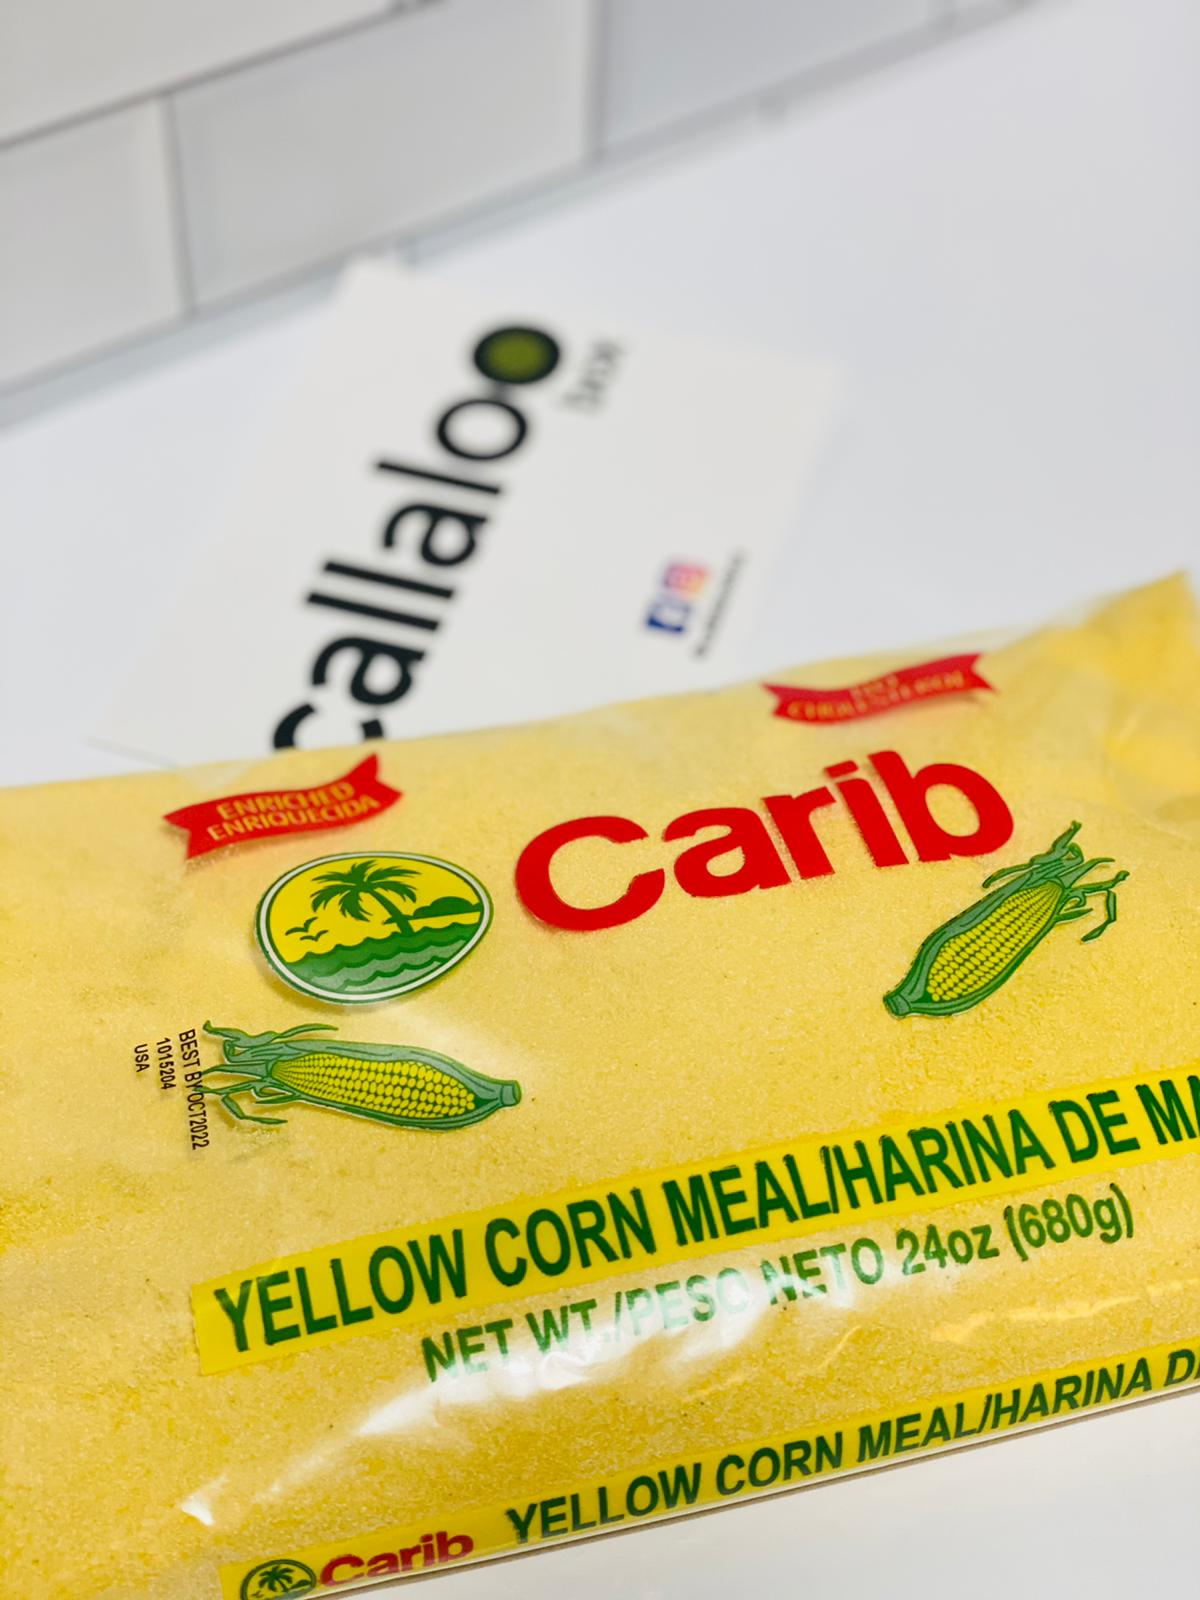 Callaloo Box Trinidad and Tobago Caribbean subscription box service Caribbean Online grocery_Carib Brand Yellow Corn Meal